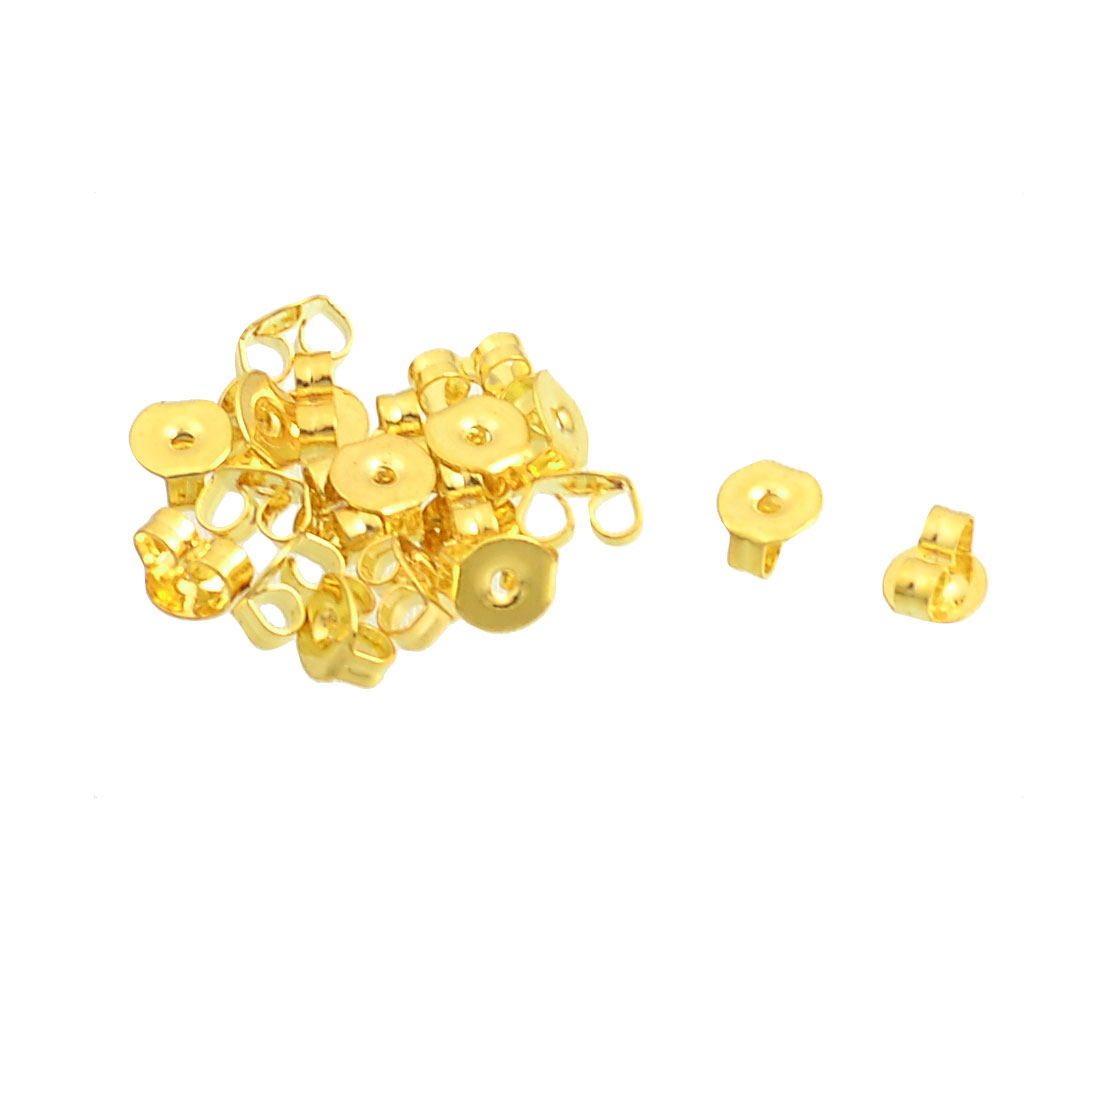 20 Pcs Gold Tone Alloy Plate Ear Nuts Earring Backs for Ladies